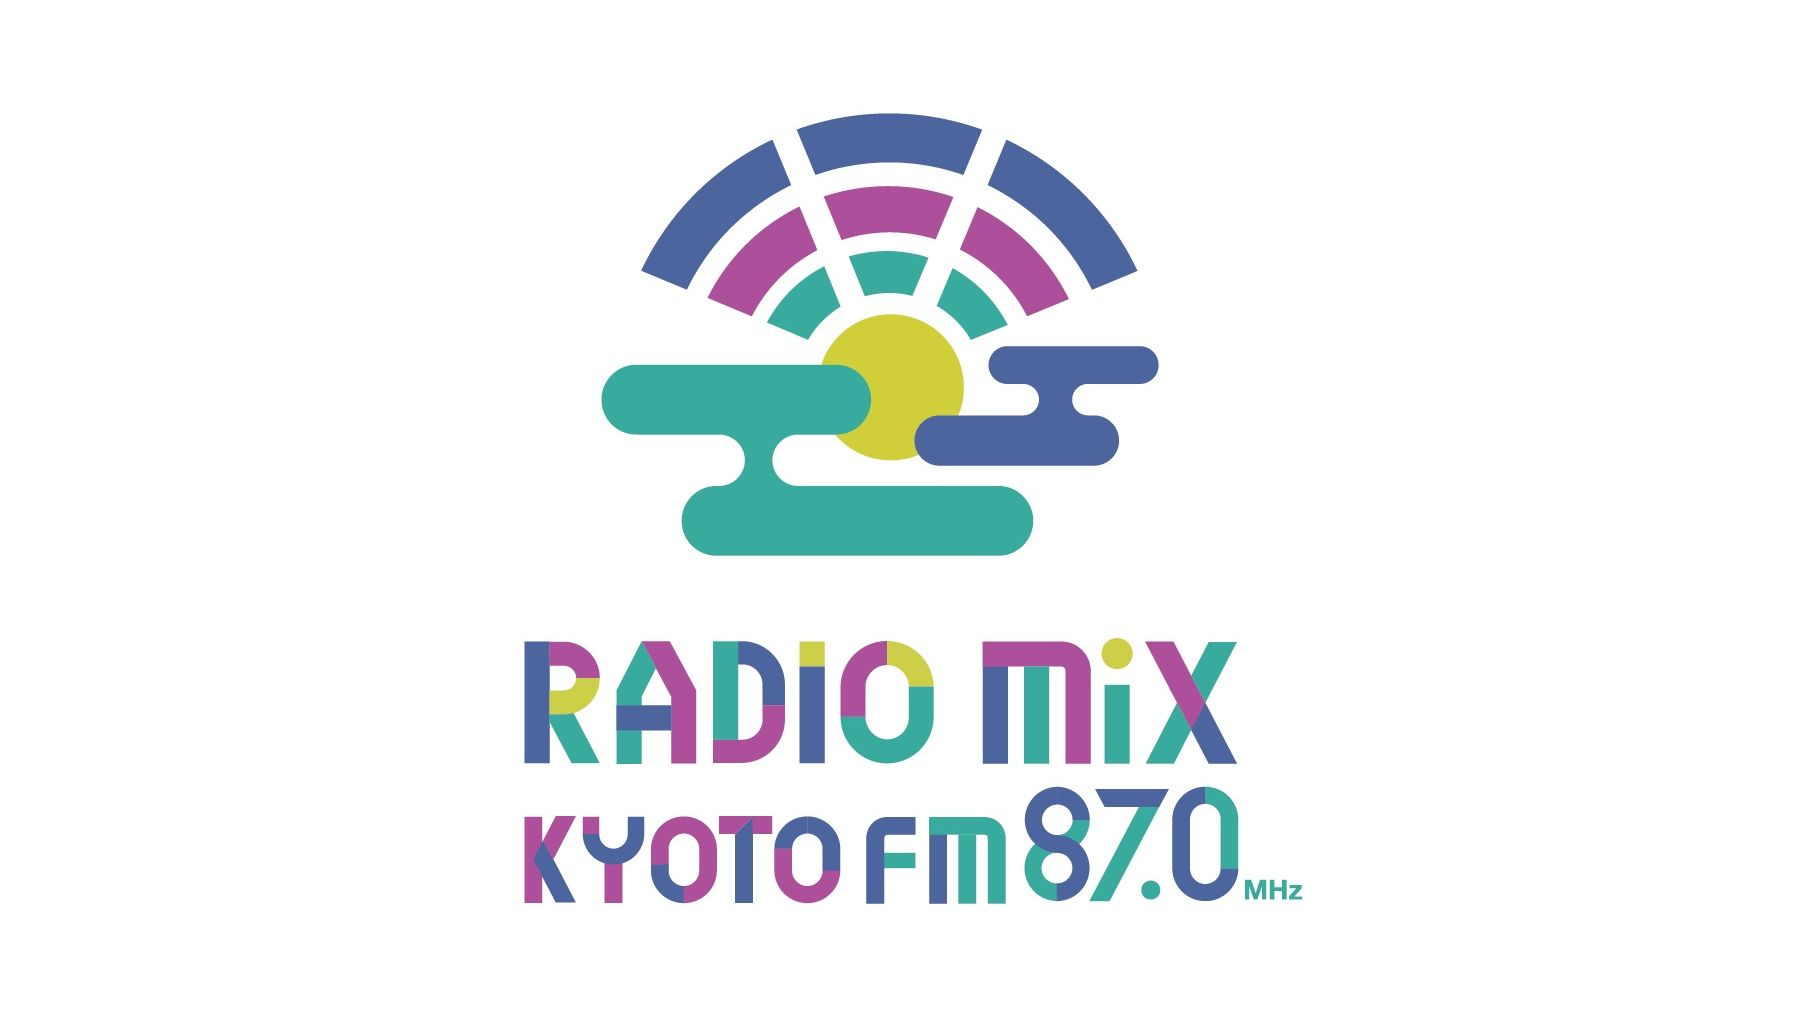 RADIO MIX KYOTO 京ごよみ